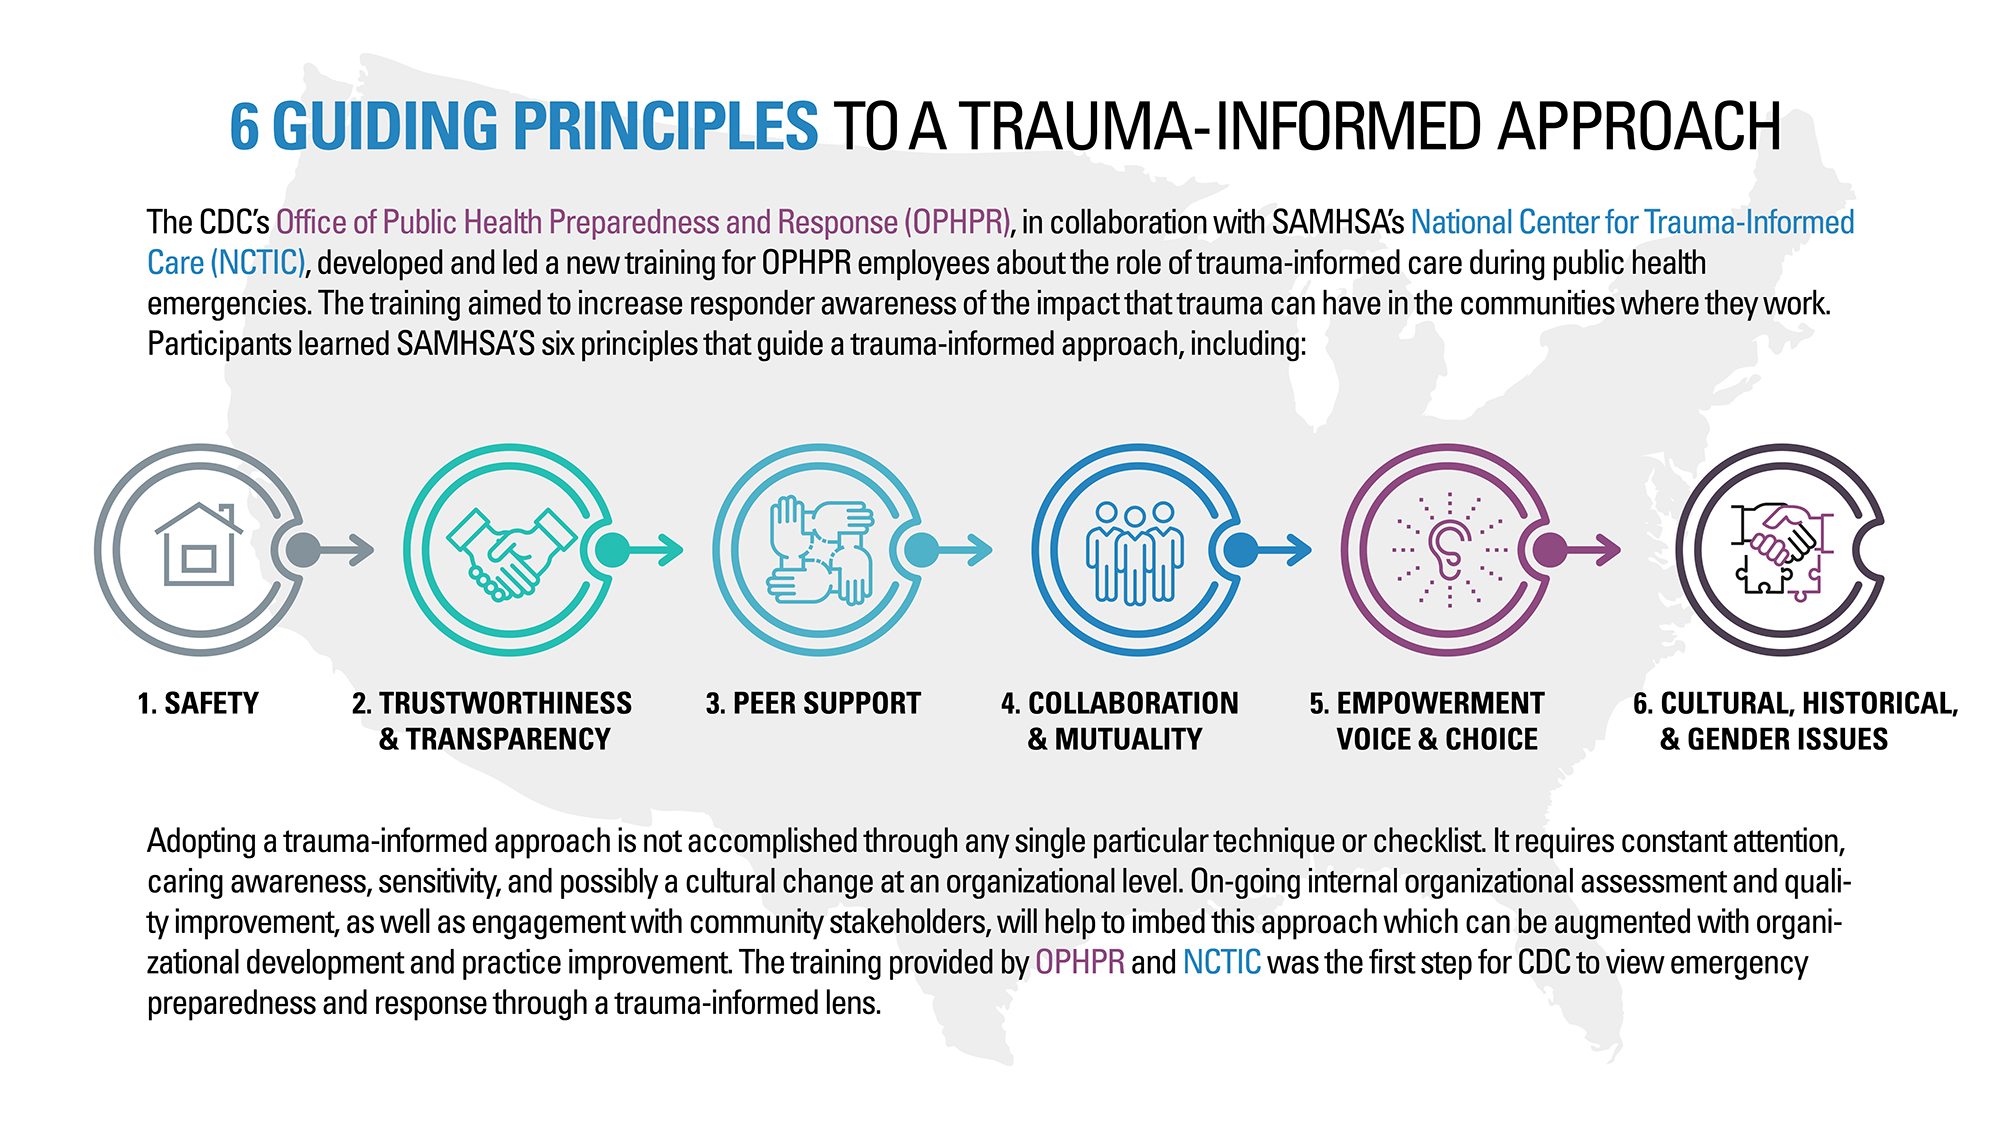 6 guiding principles to a trauma informed approach